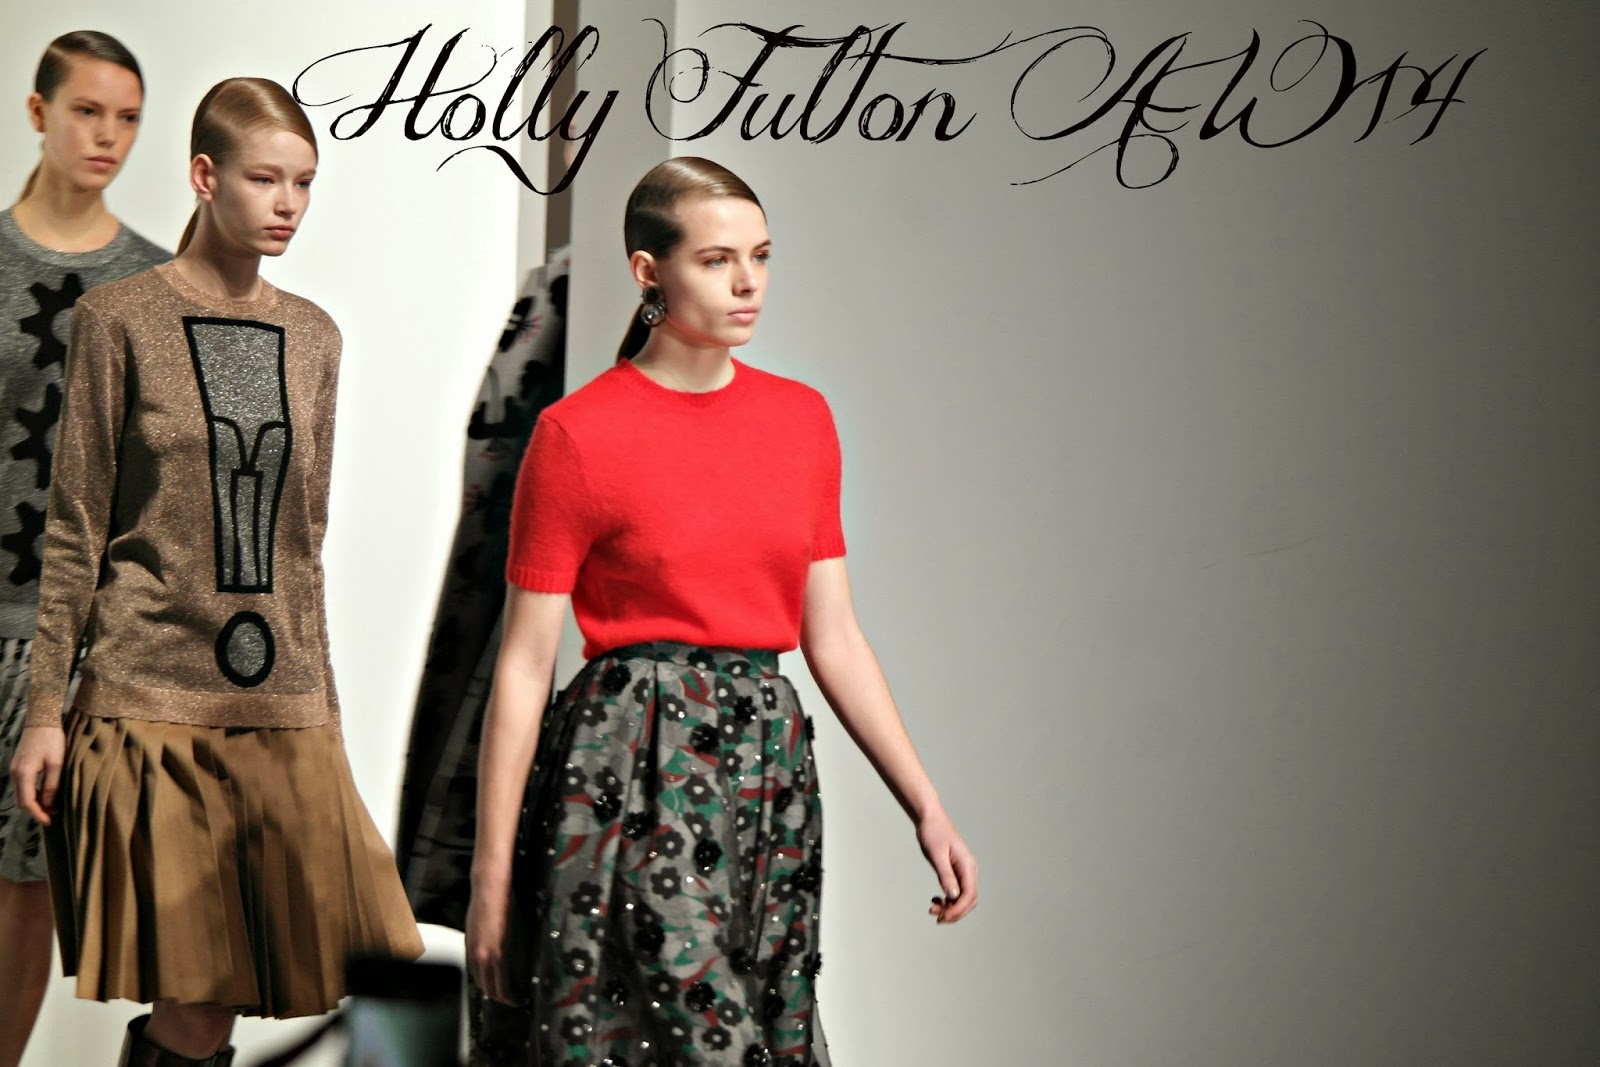 LG and Holly Fulton